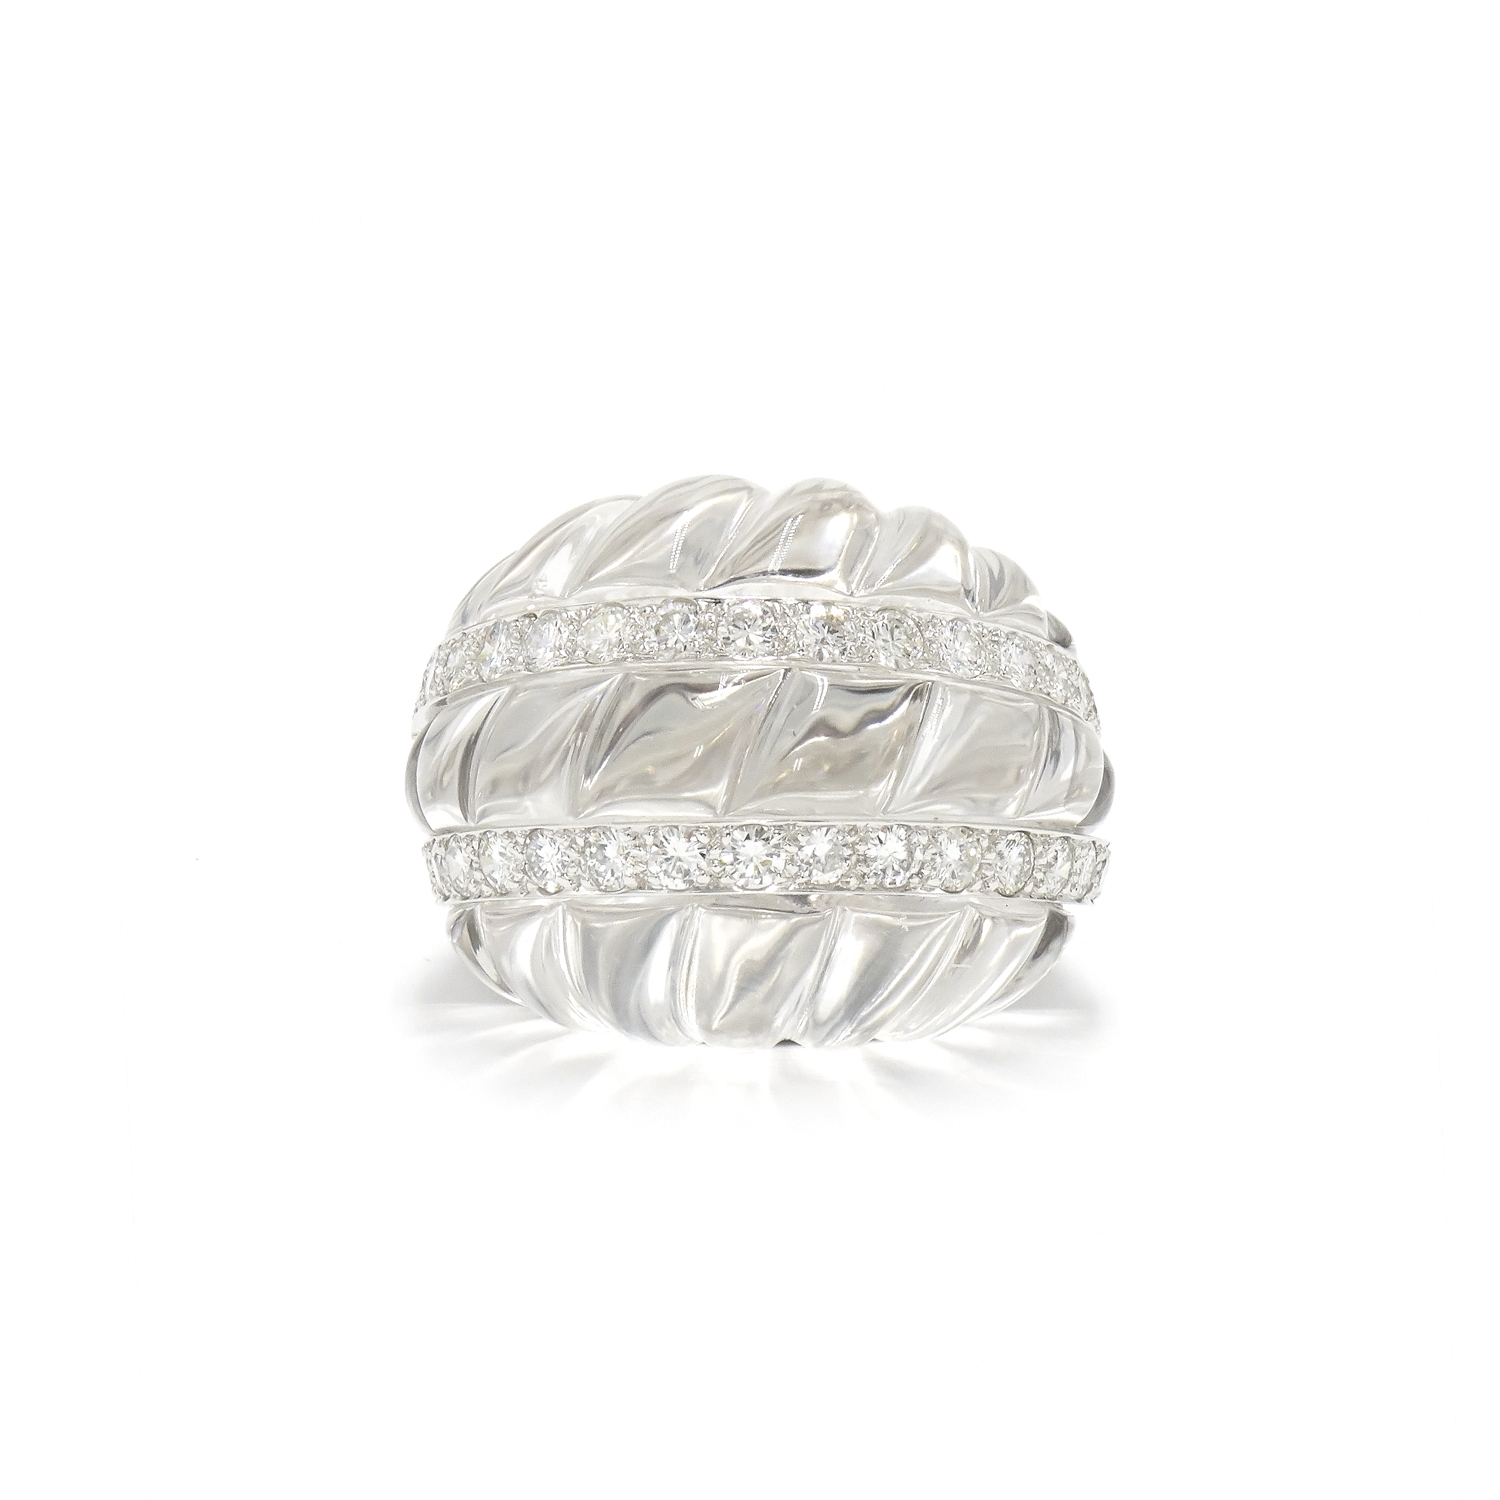 Carved Rock Crystal and Diamond Ring by David Webb Style R-37356-FL-0-0